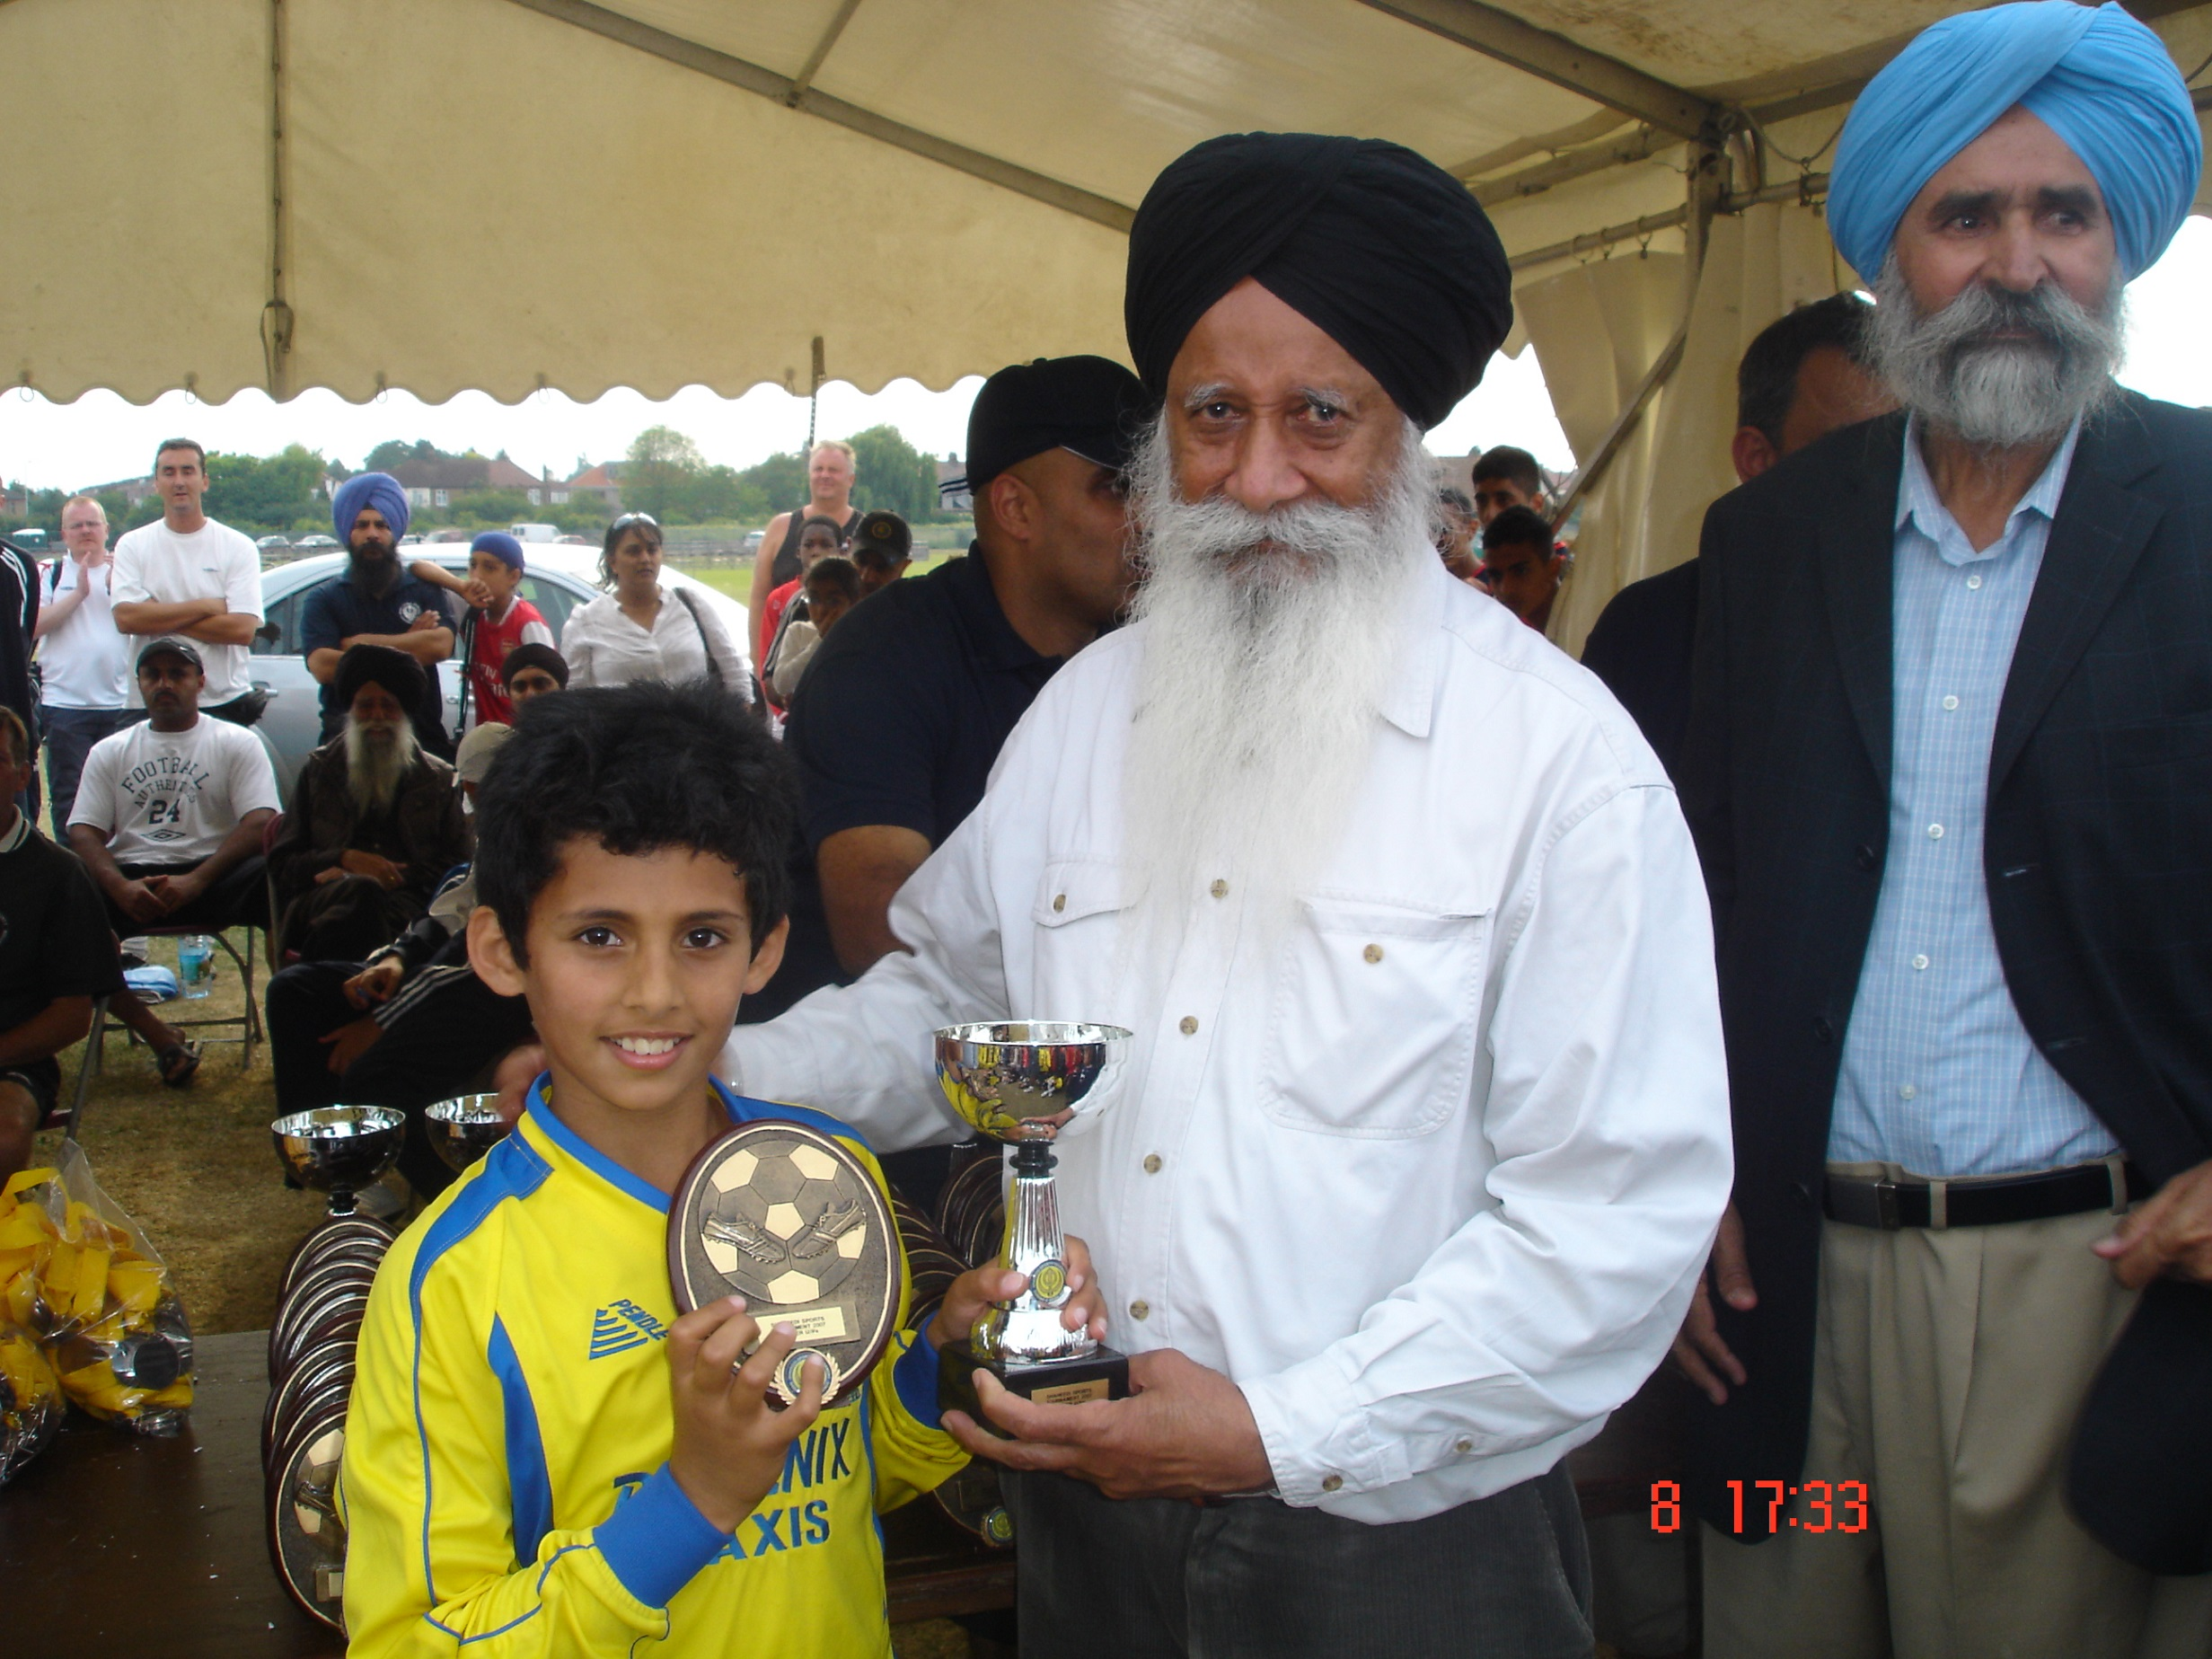 Arjun Heer with U9s Barking 2007 winners trophy